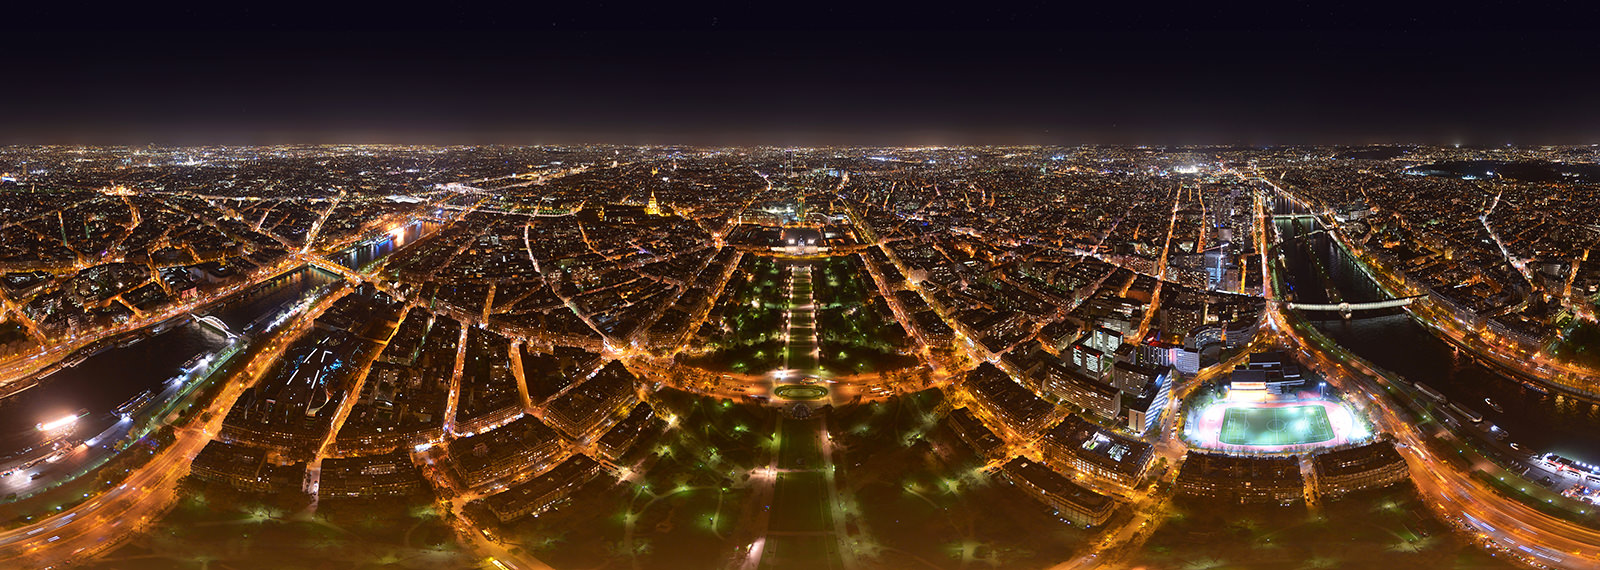 Top of Eiffel Tower, Paris - Virtual tour